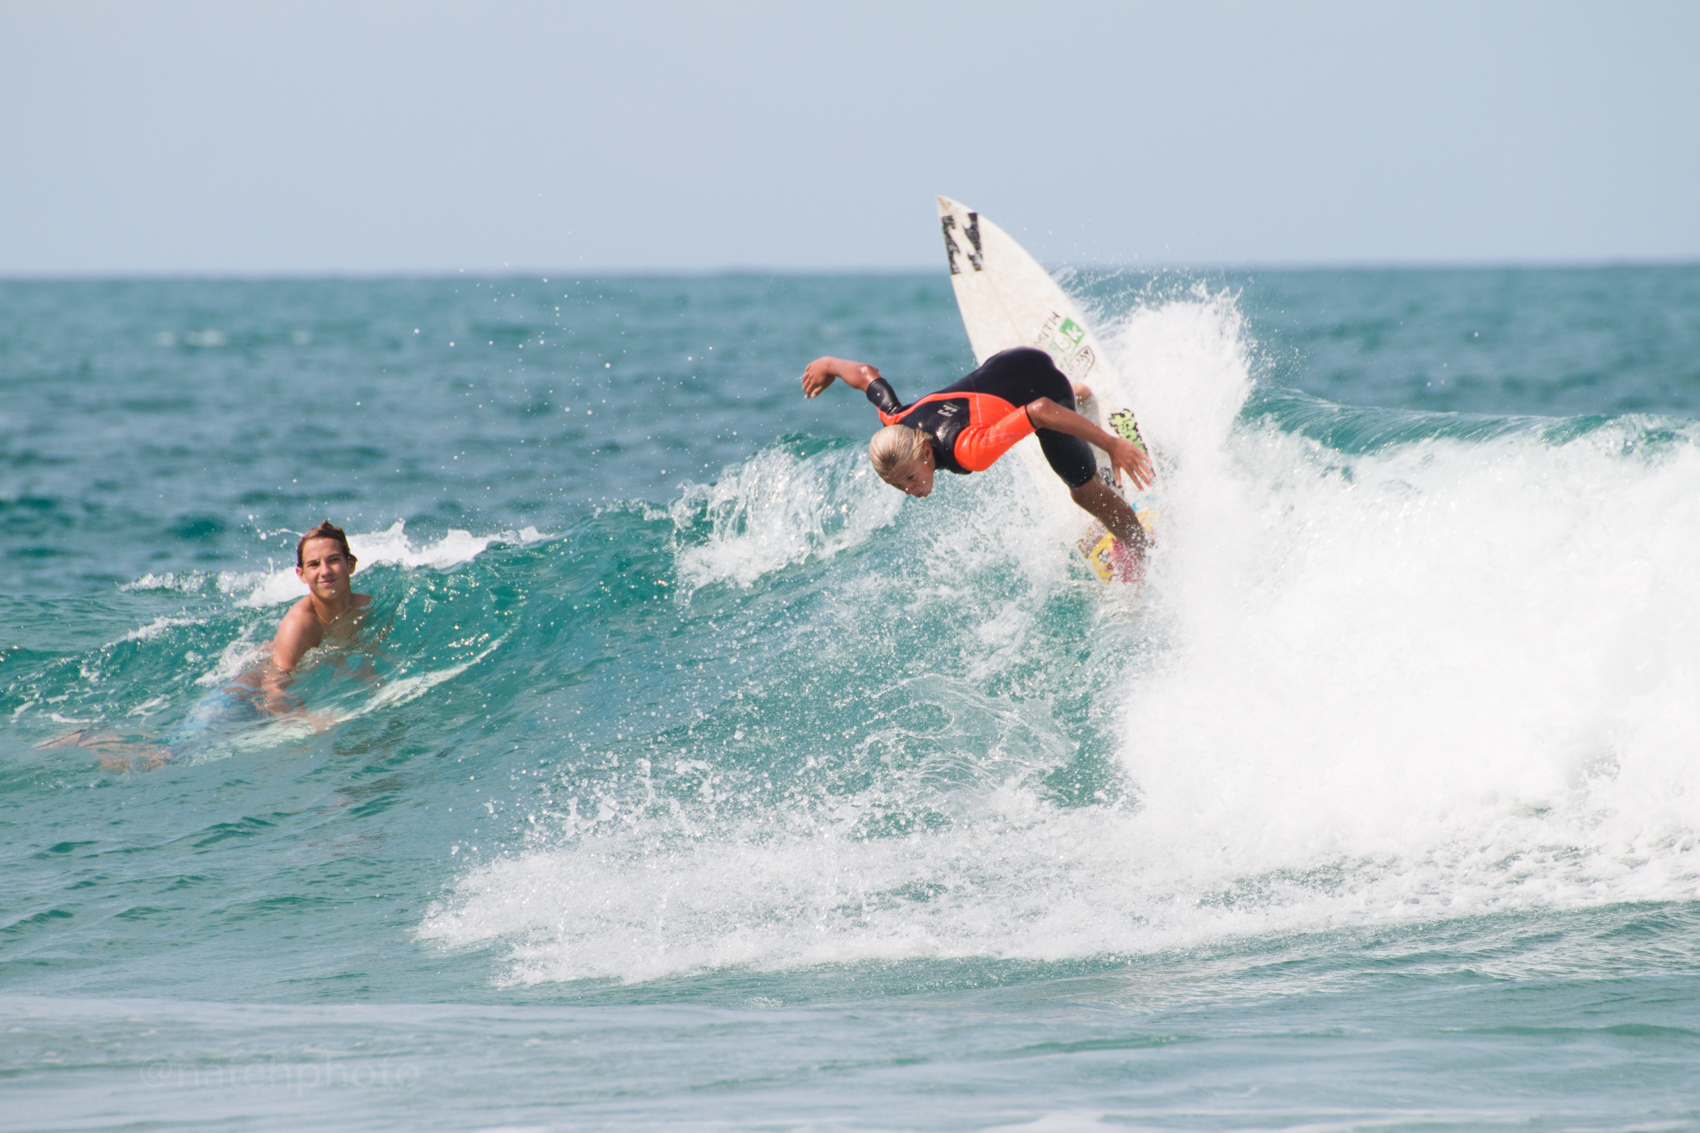 Tommy Coleman surfing at Sebastian Inlet, Florida. Photos By Nathaniel Harrington.